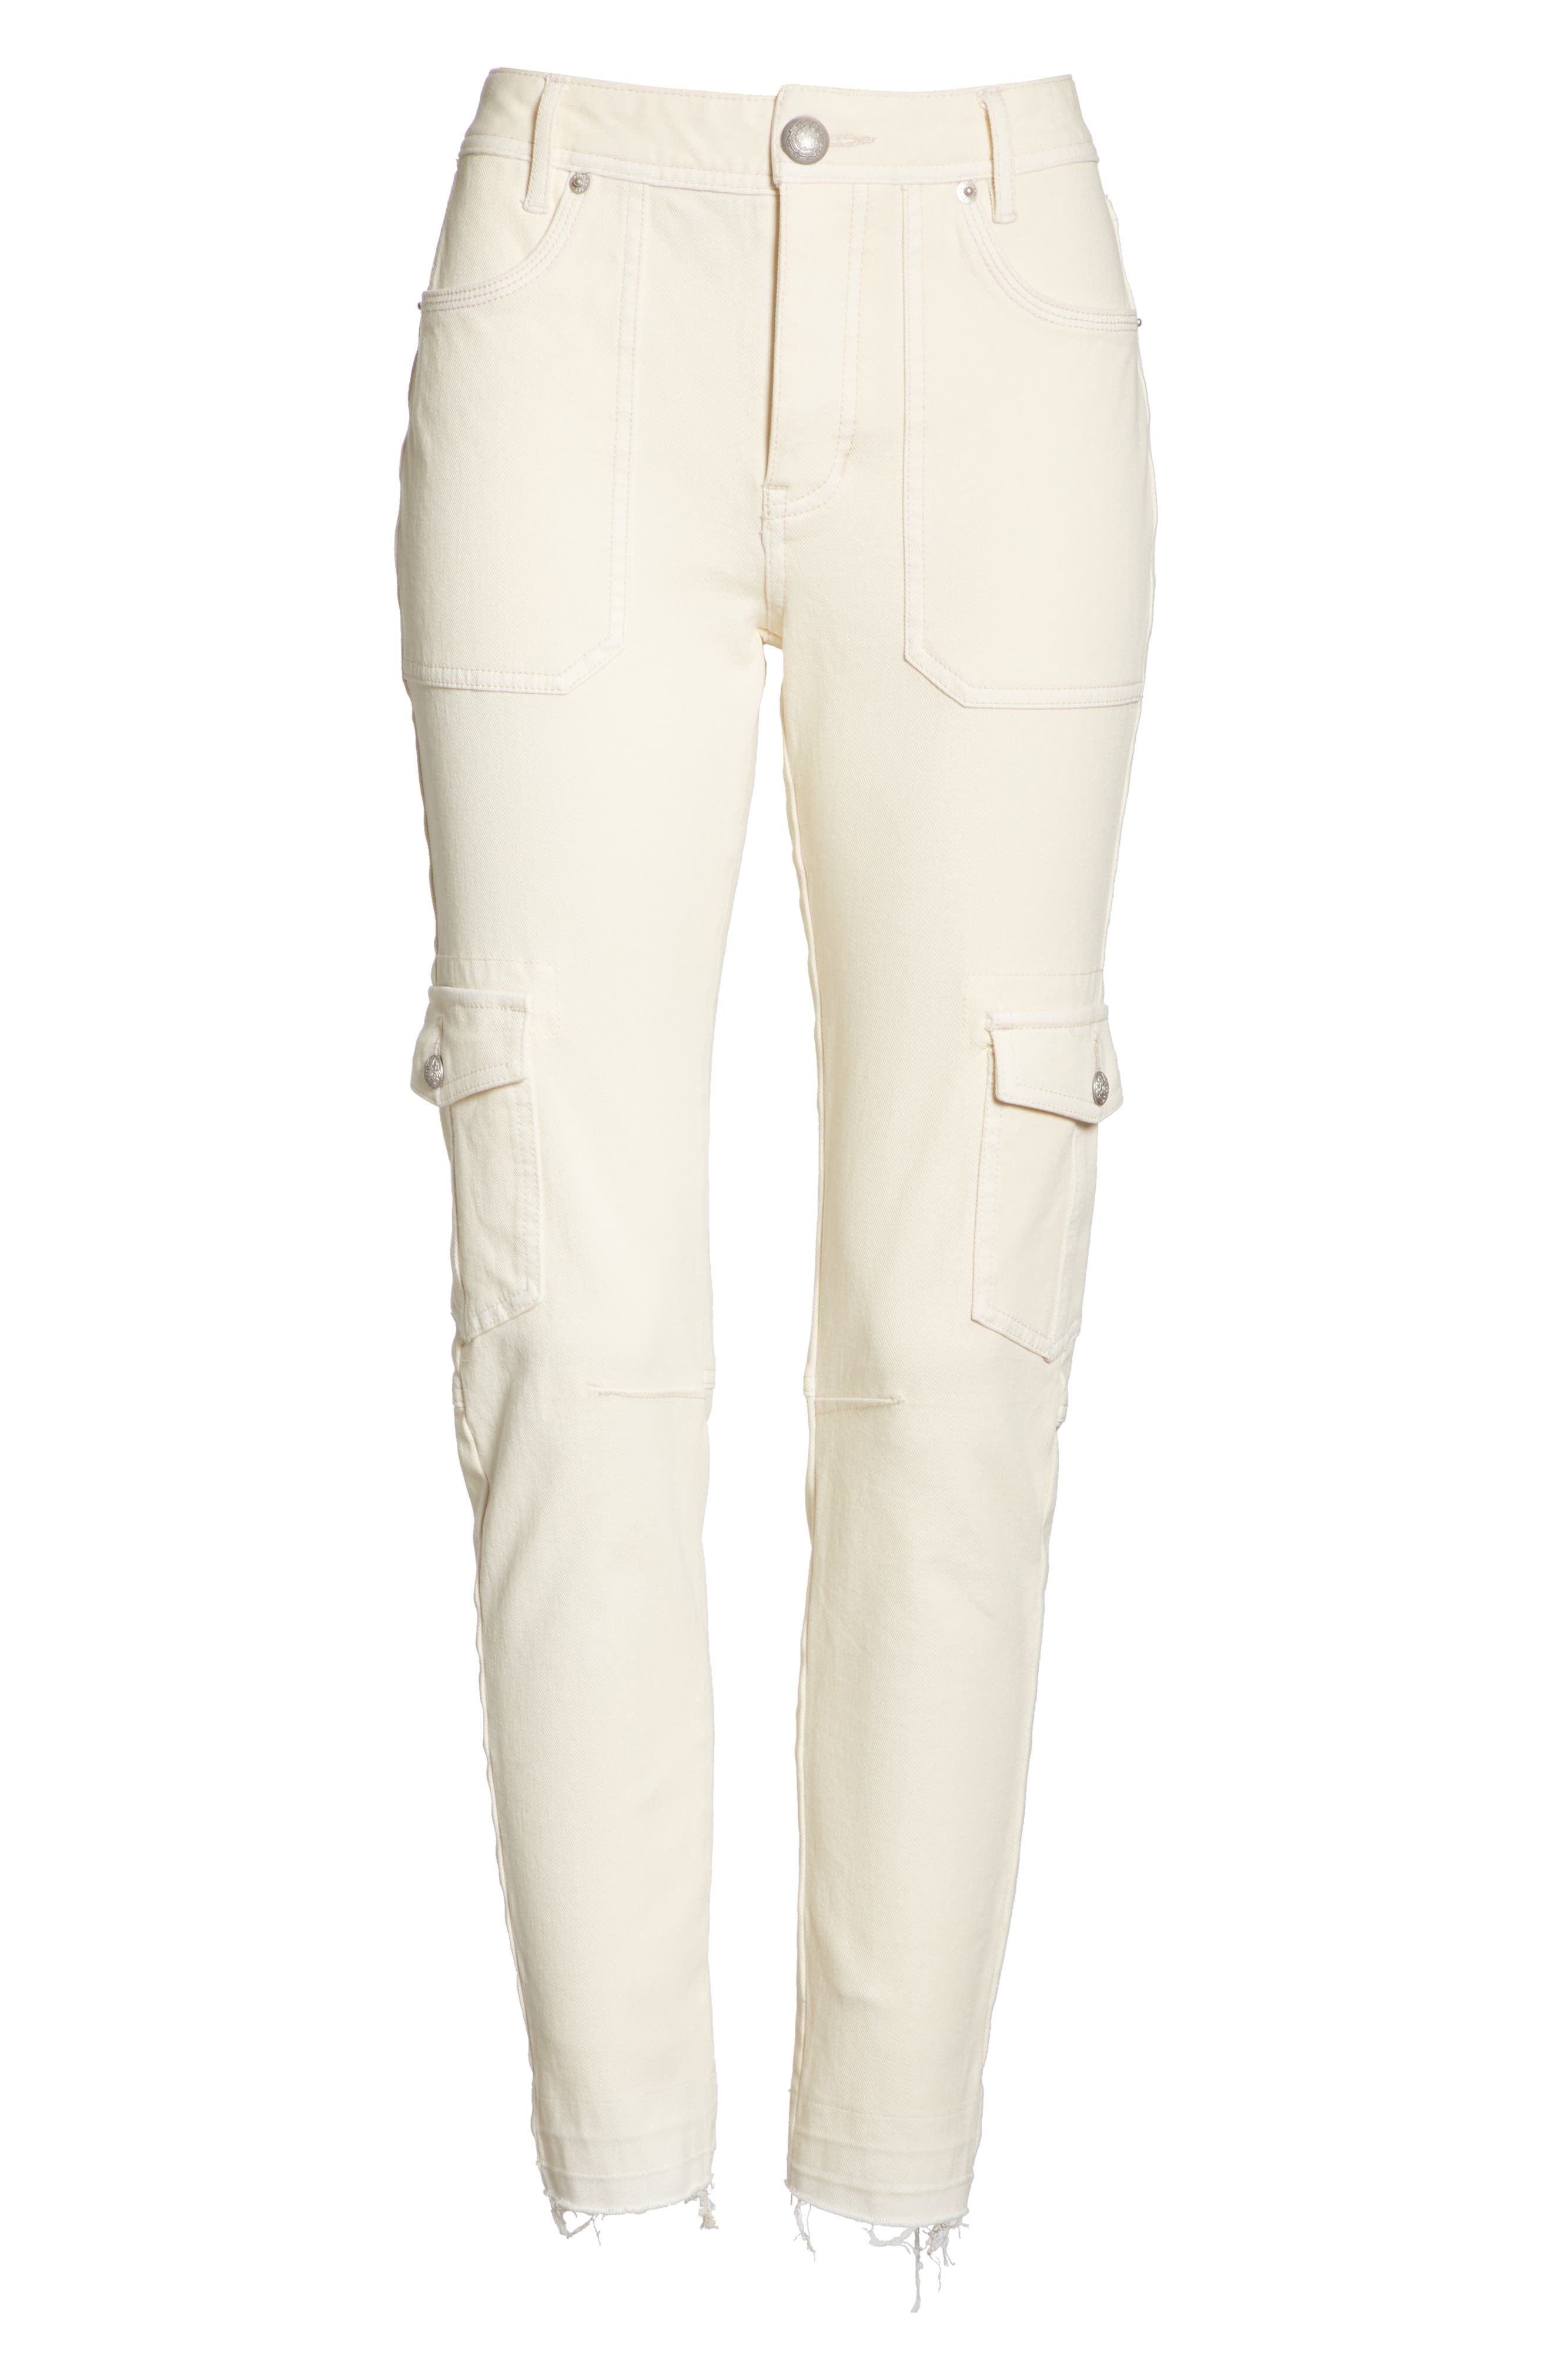 FREE PEOPLE,                             Utility Skinny Jeans,                             Alternate thumbnail 6, color,                             252